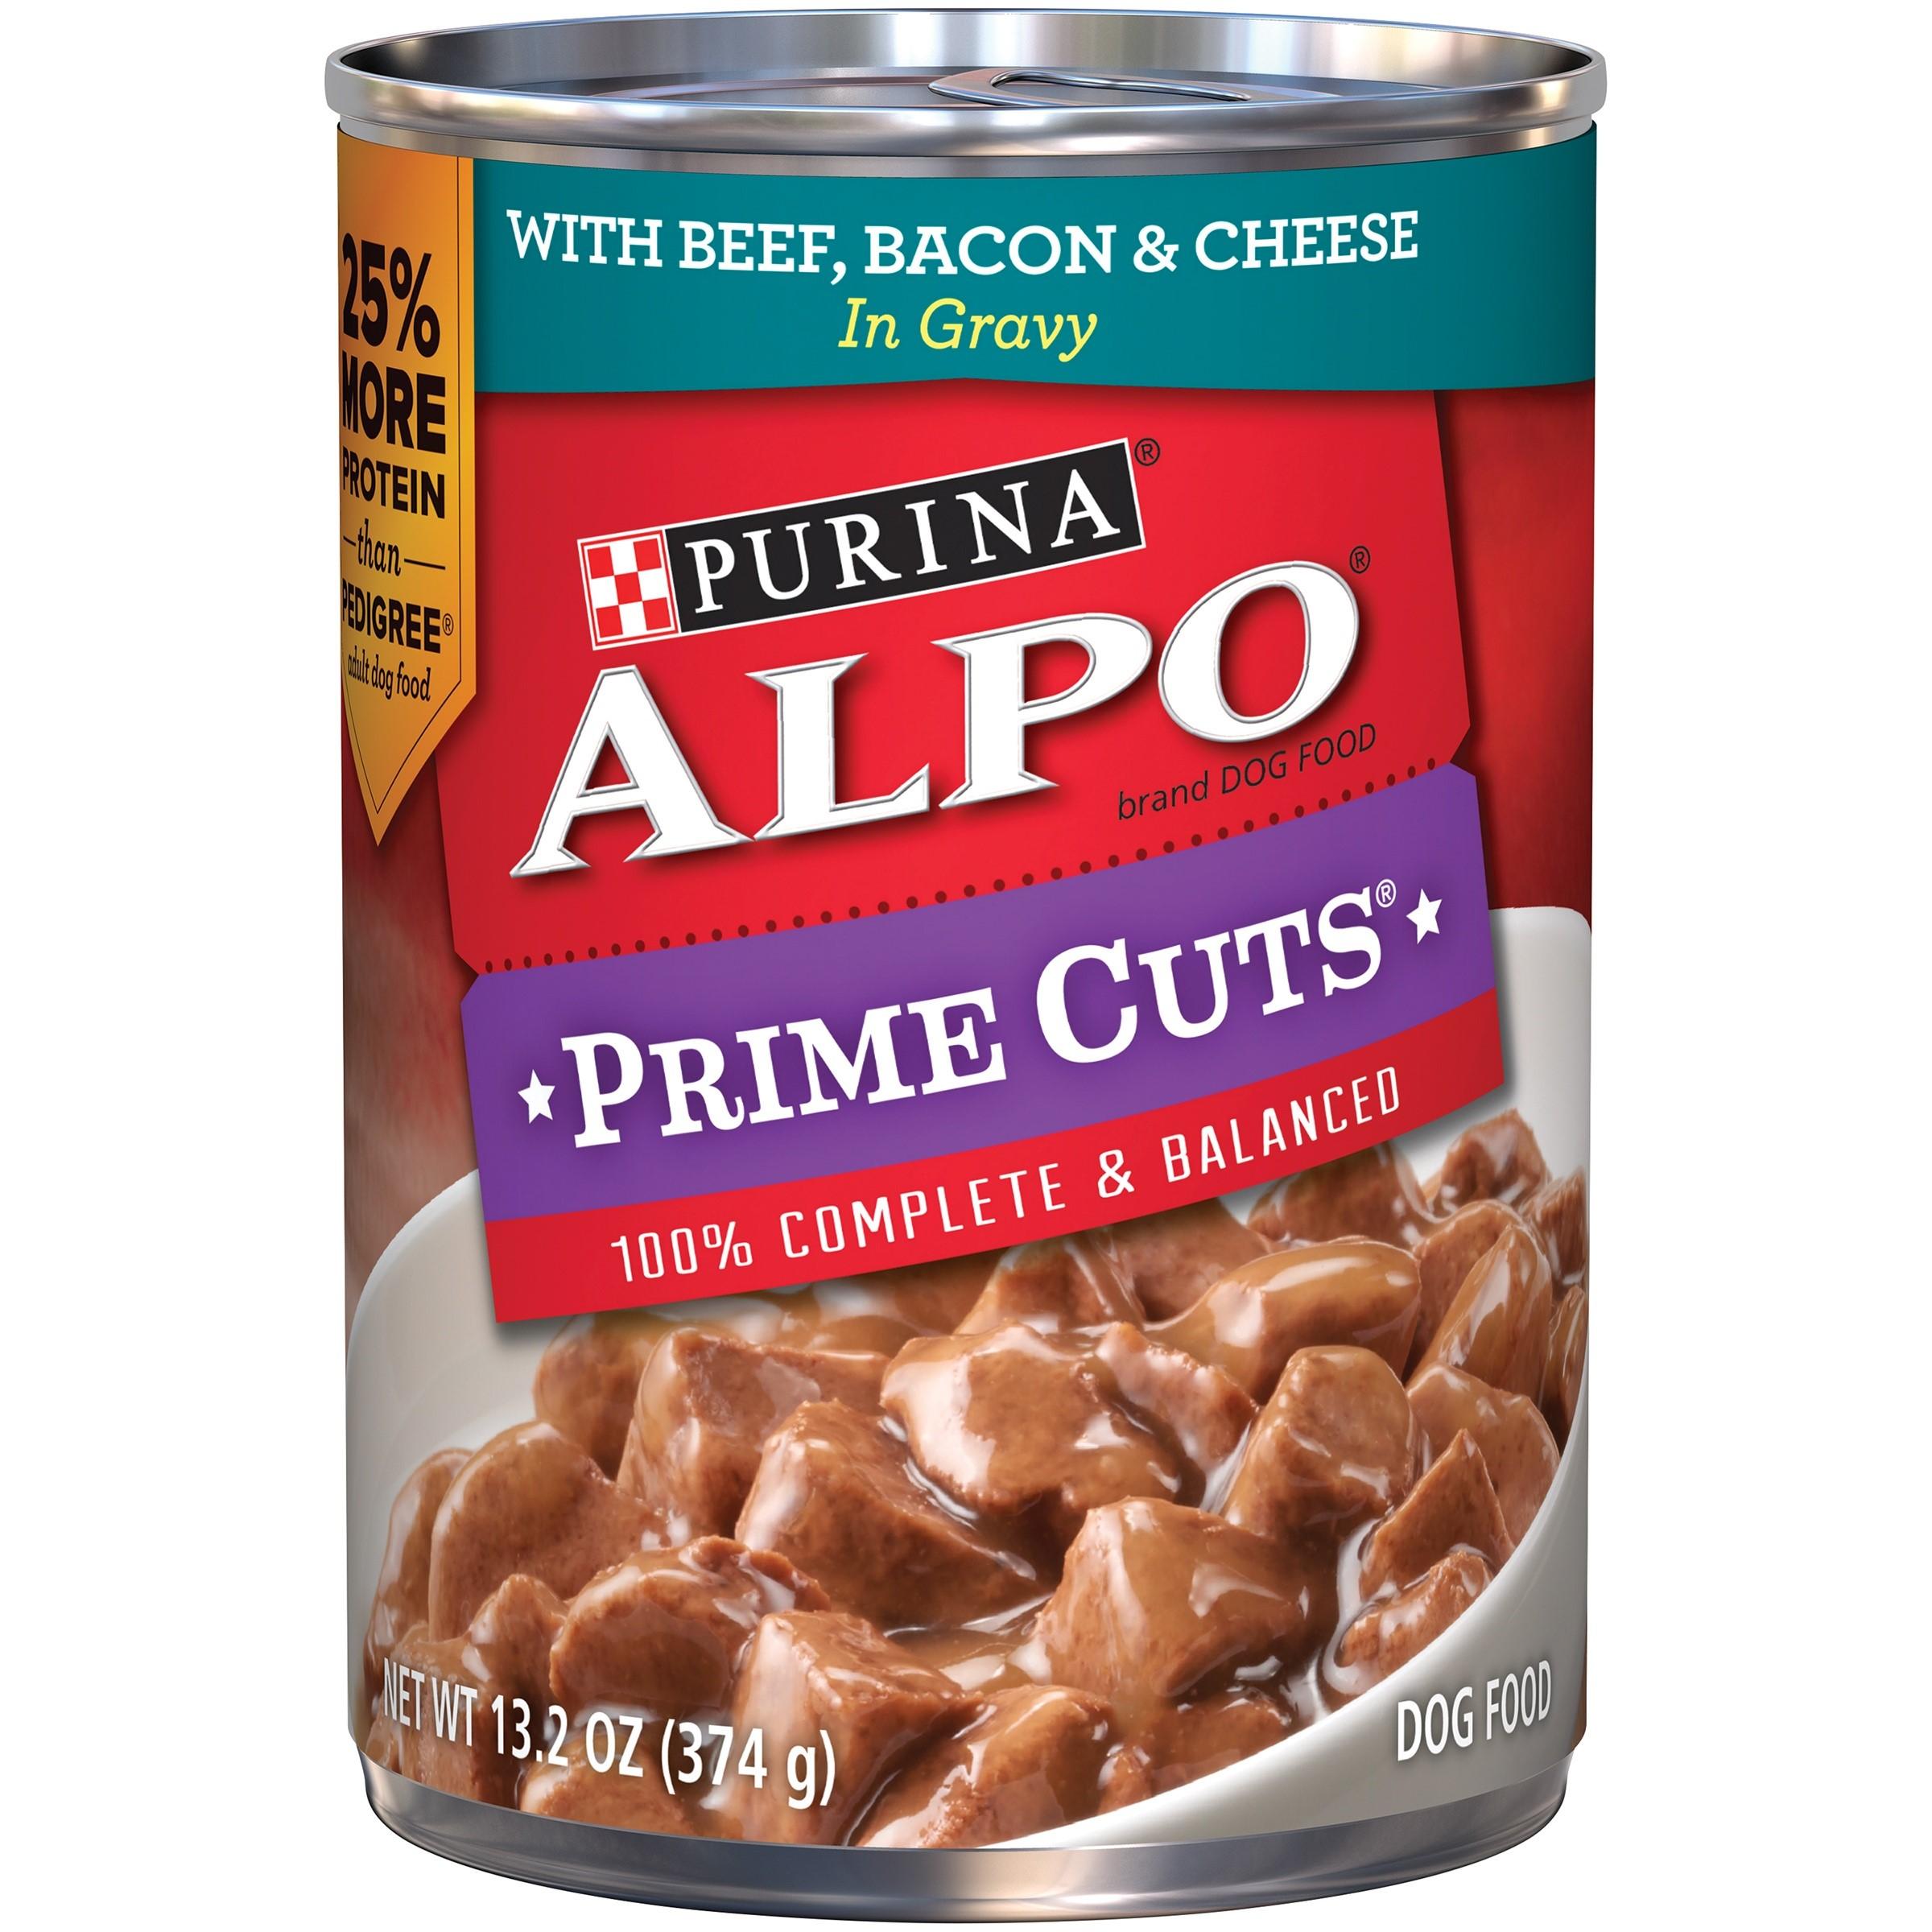 Purina ALPO Prime Cuts Beef, Bacon & Cheese in Gravy Wet Dog Food, 13.2-Oz, Case of 12